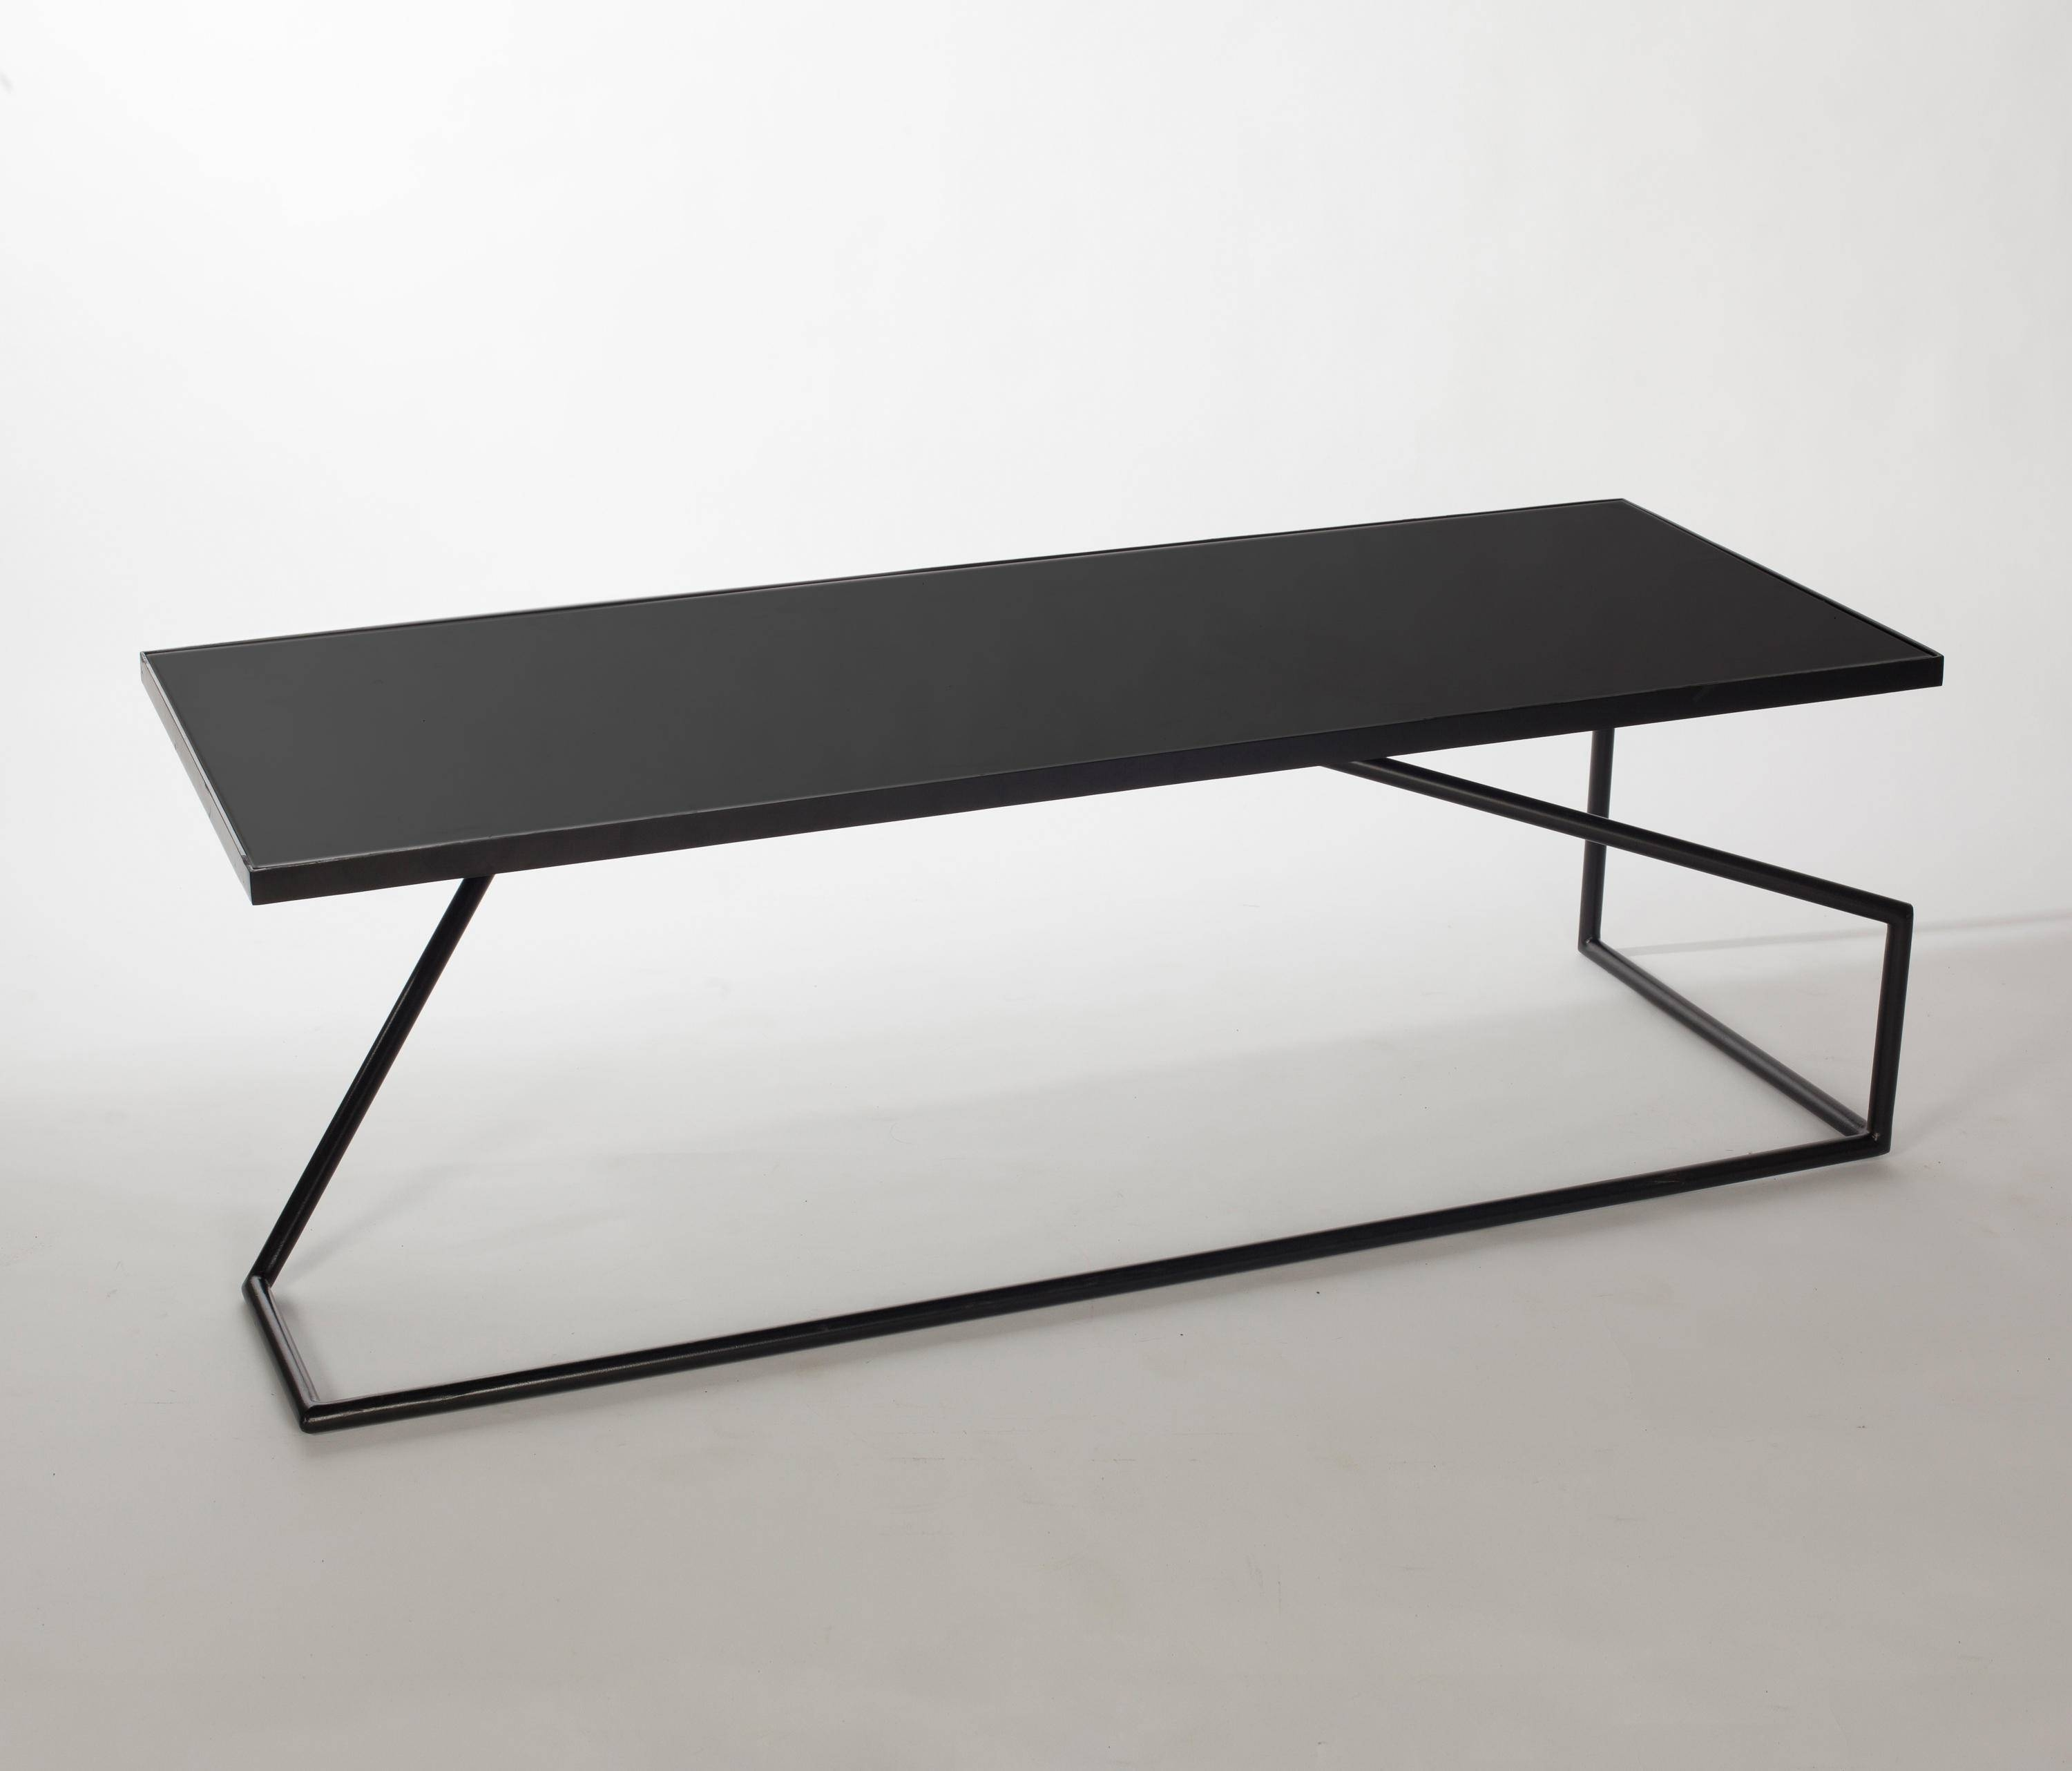 Asana (Warrior Pose) Coffee Table - Lounge Tables From Bombay intended for Bombay Coffee Tables (Image 2 of 30)